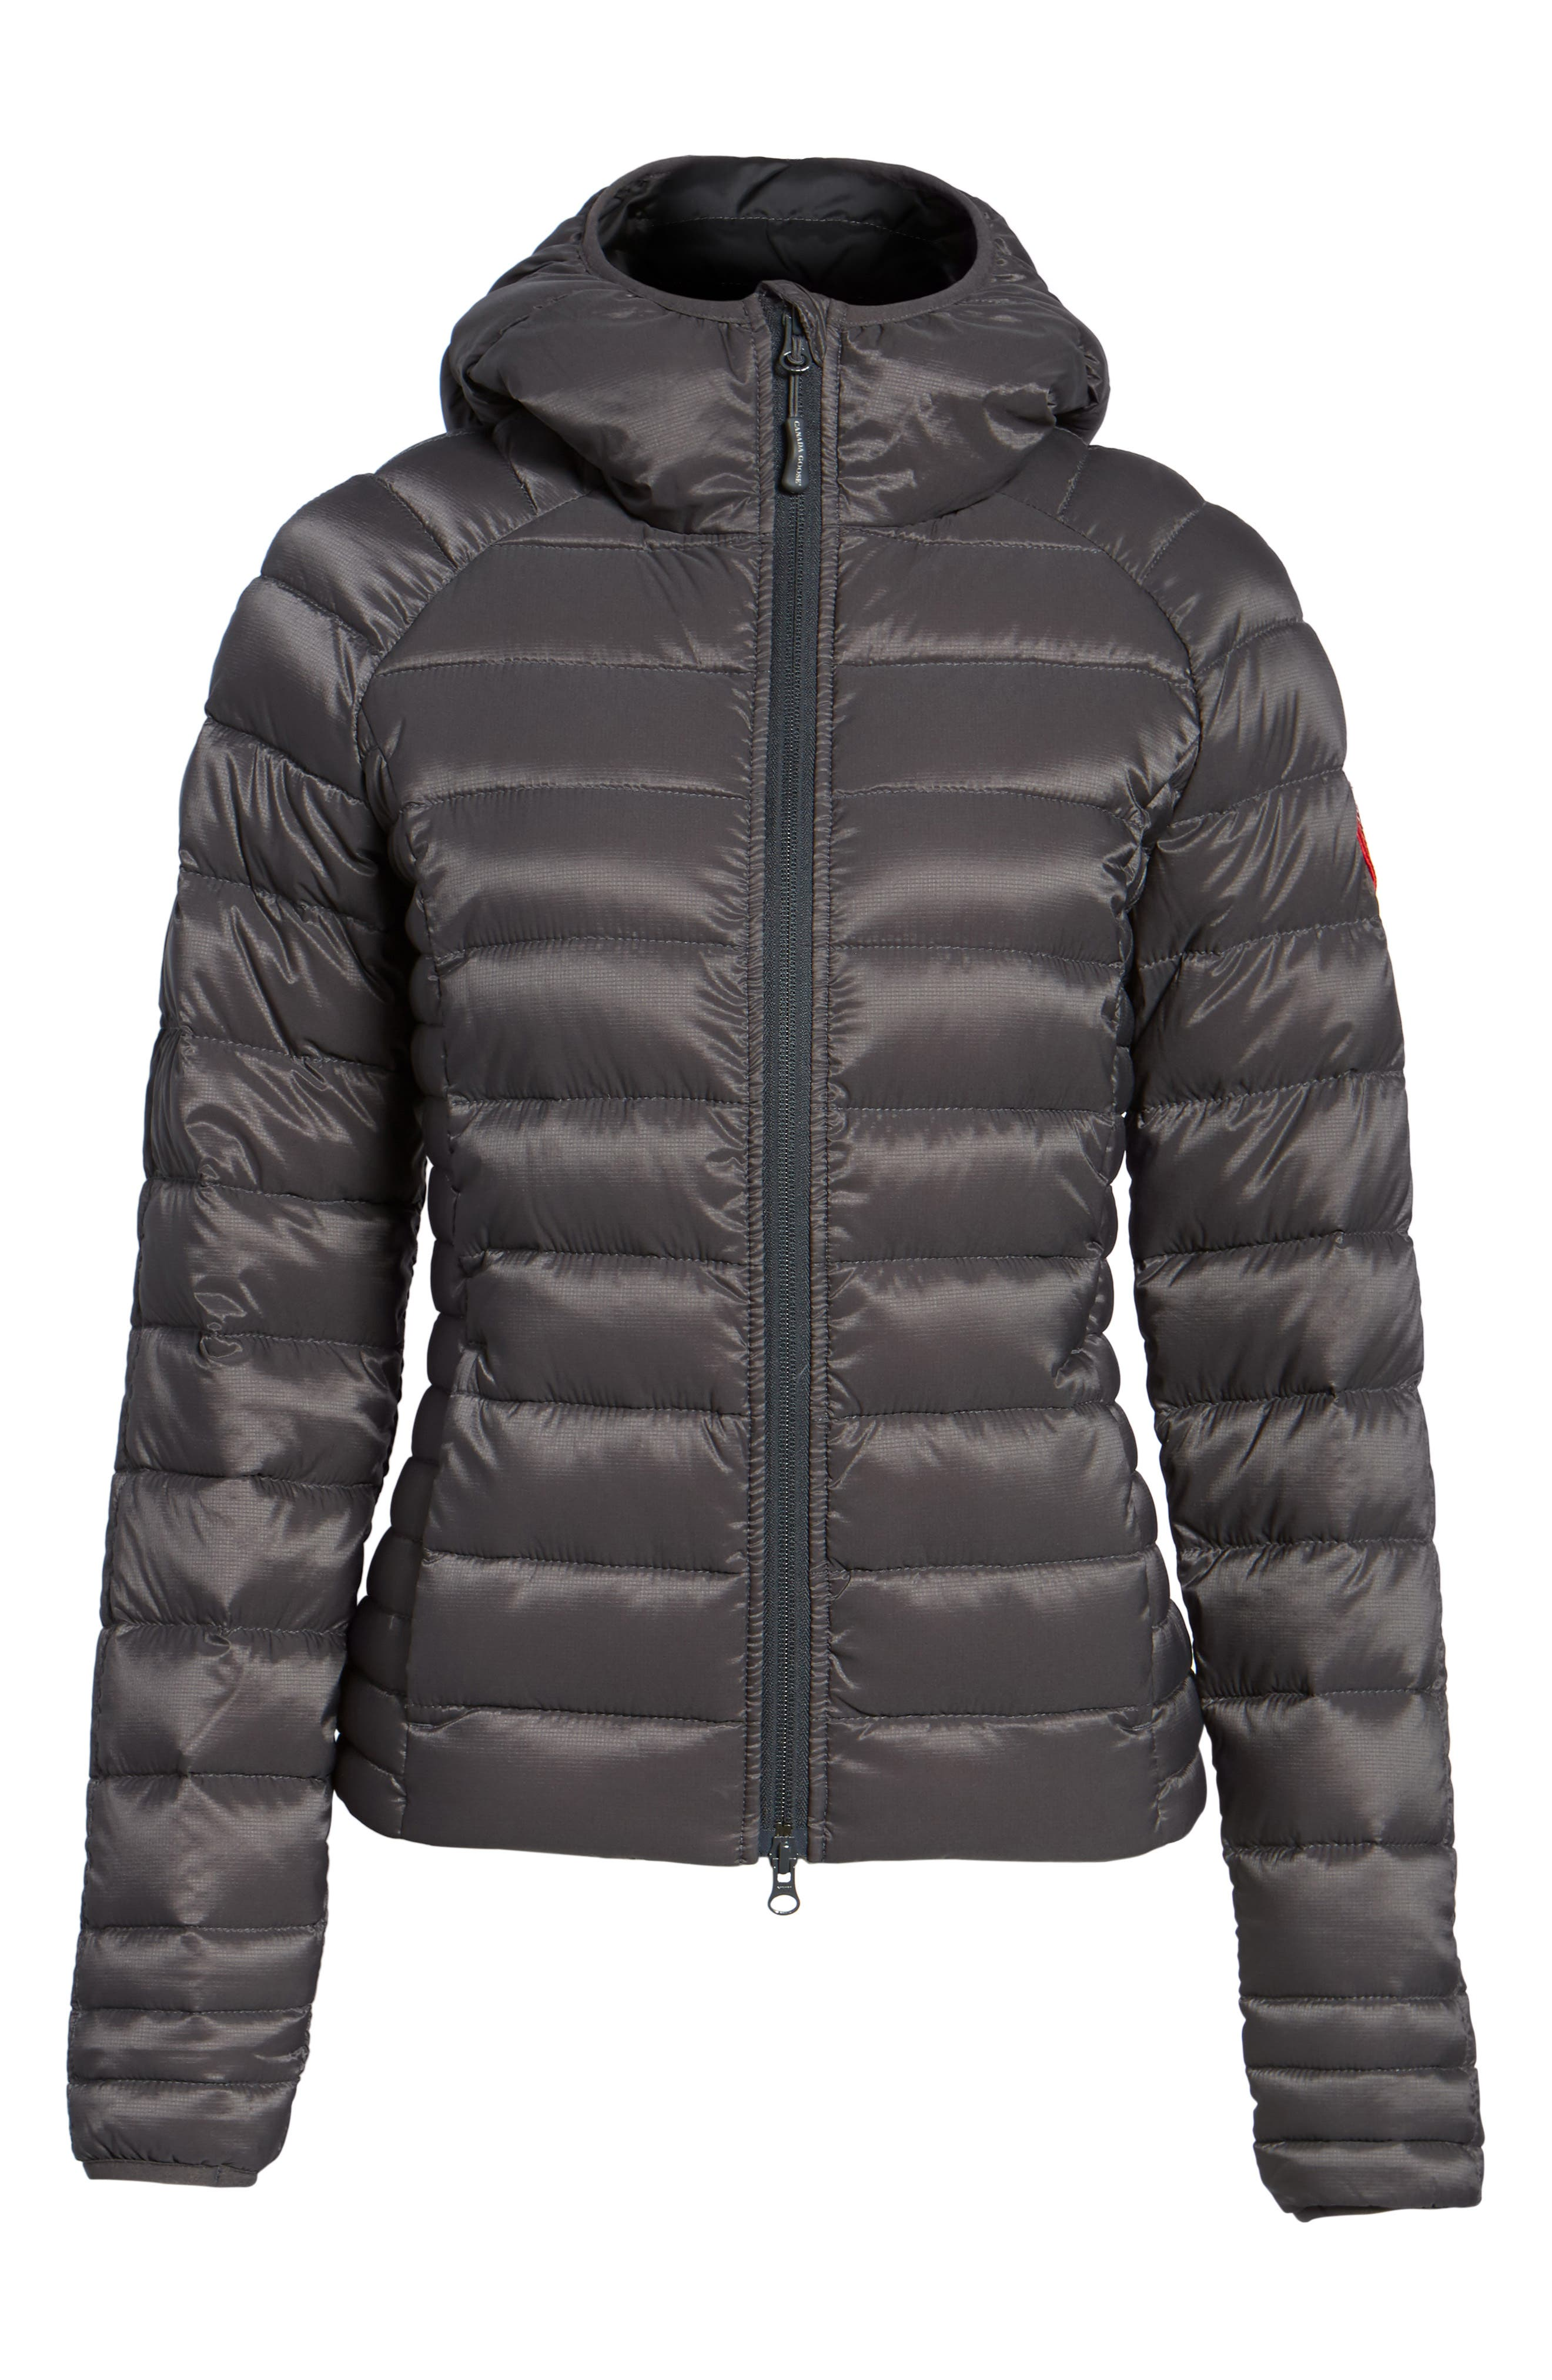 'Brookvale' Packable Hooded Quilted Down Jacket,                             Alternate thumbnail 7, color,                             Graphite/ Black